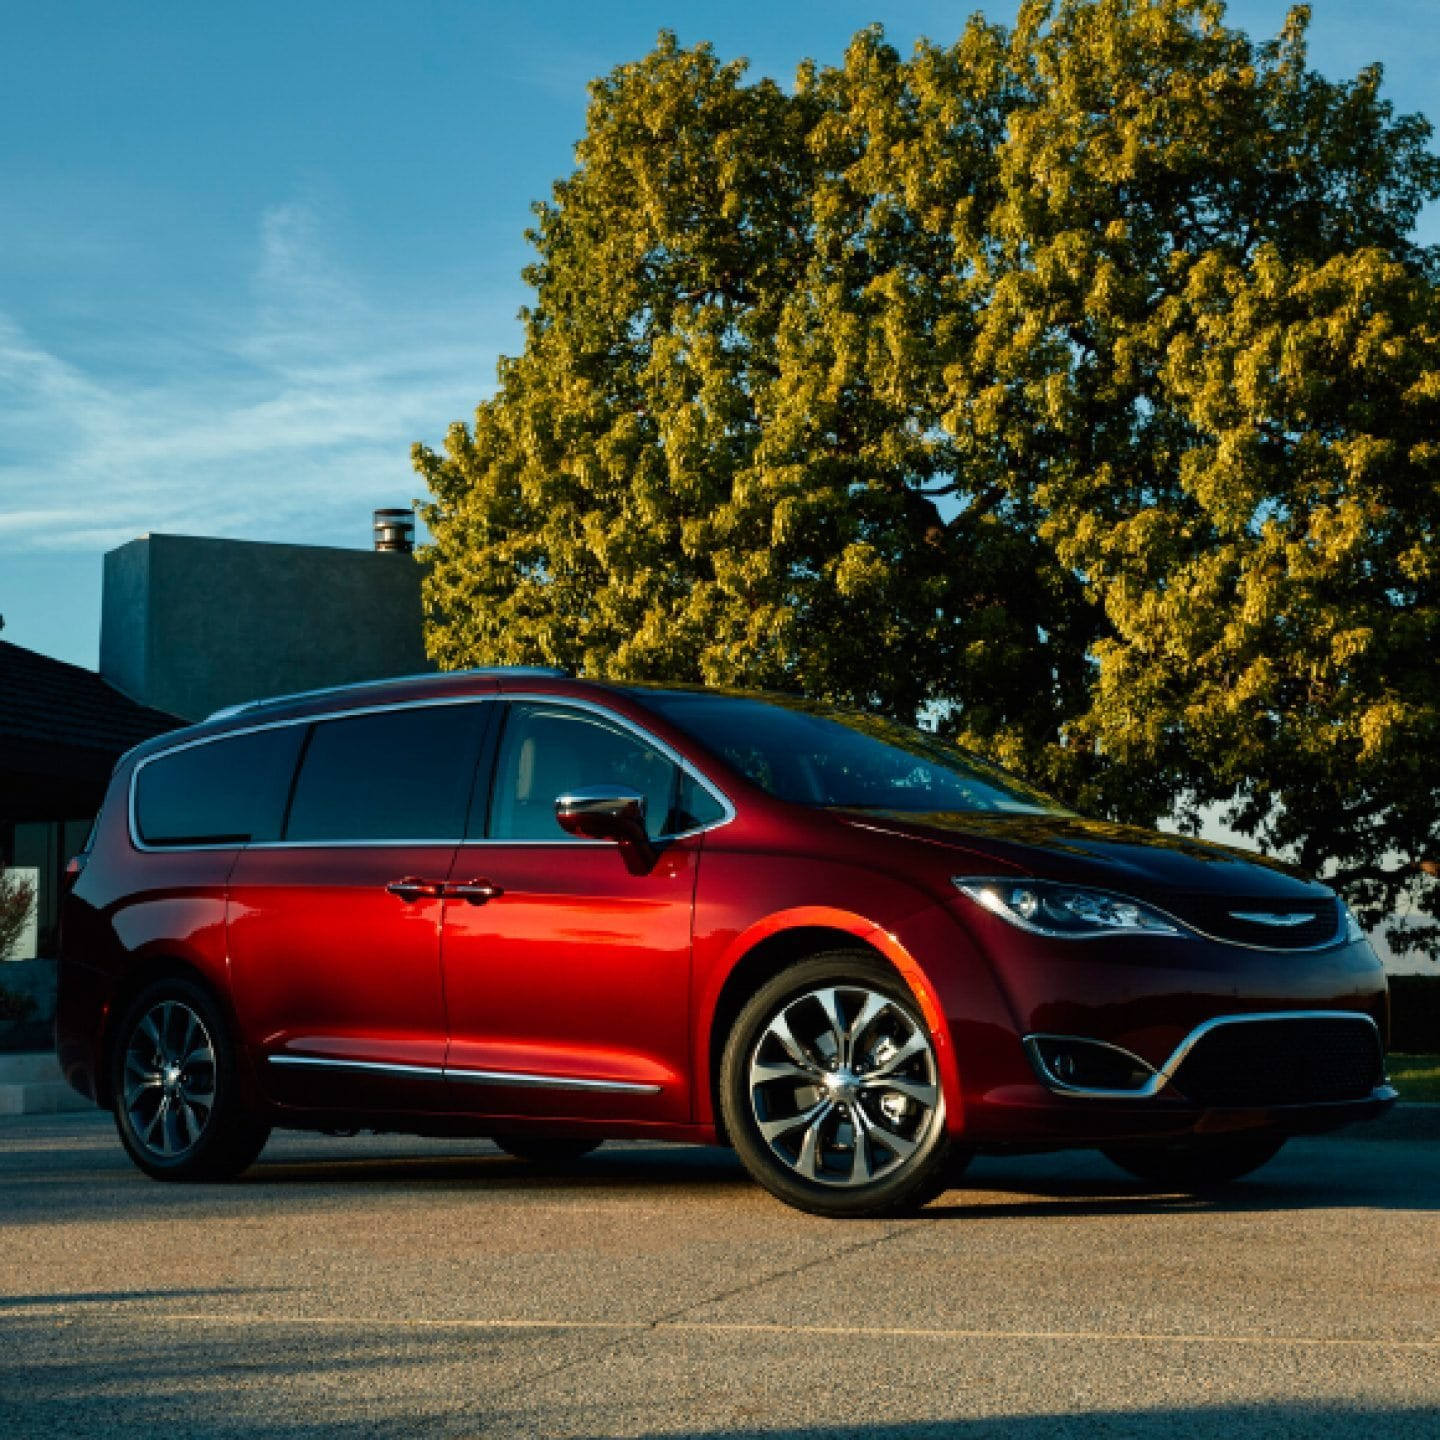 chrysler-pacifica-gas-stylish